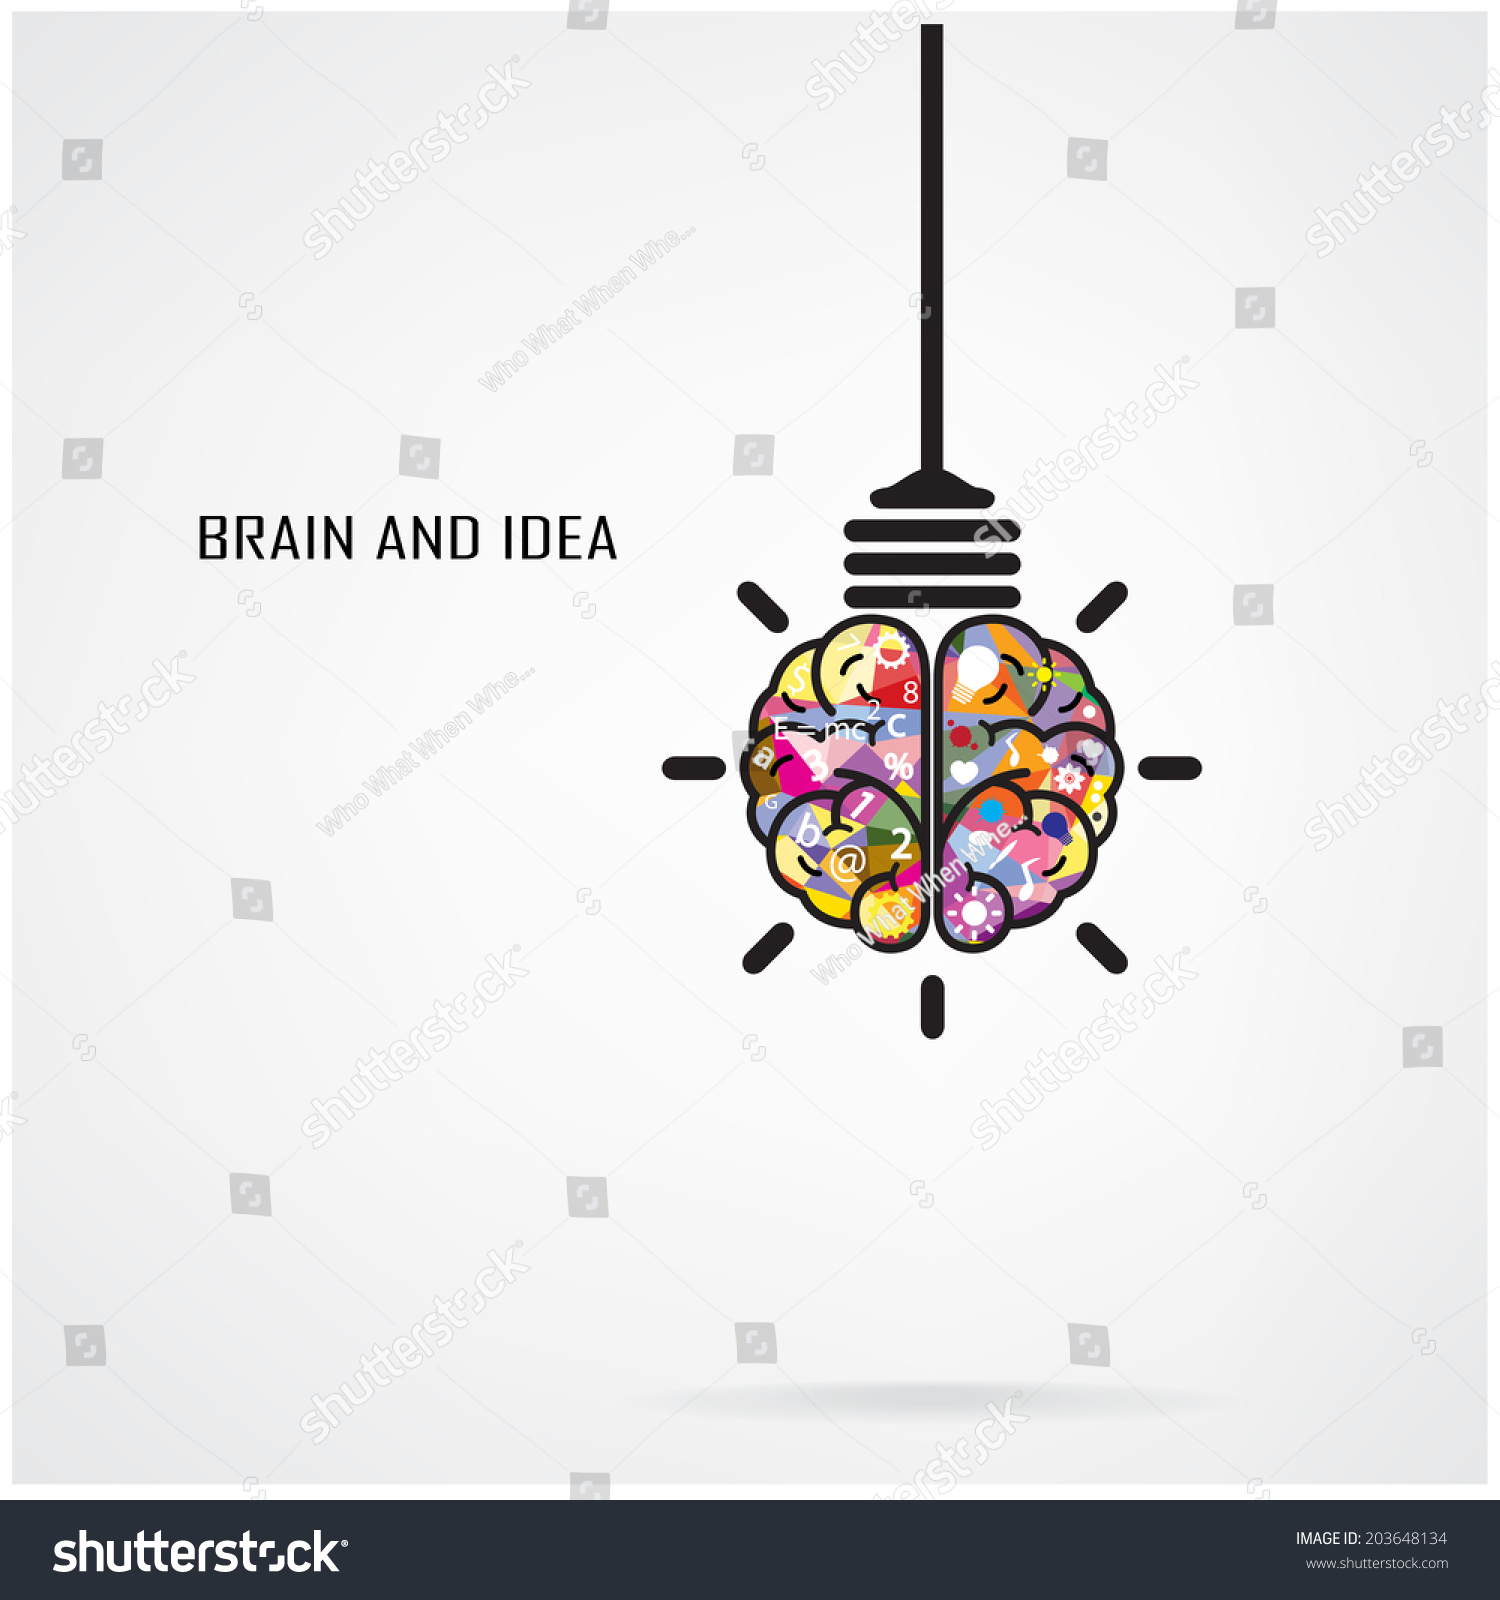 creative brain idea and light bulb concept design for poster flyer cover brochure business idea - Idea Design